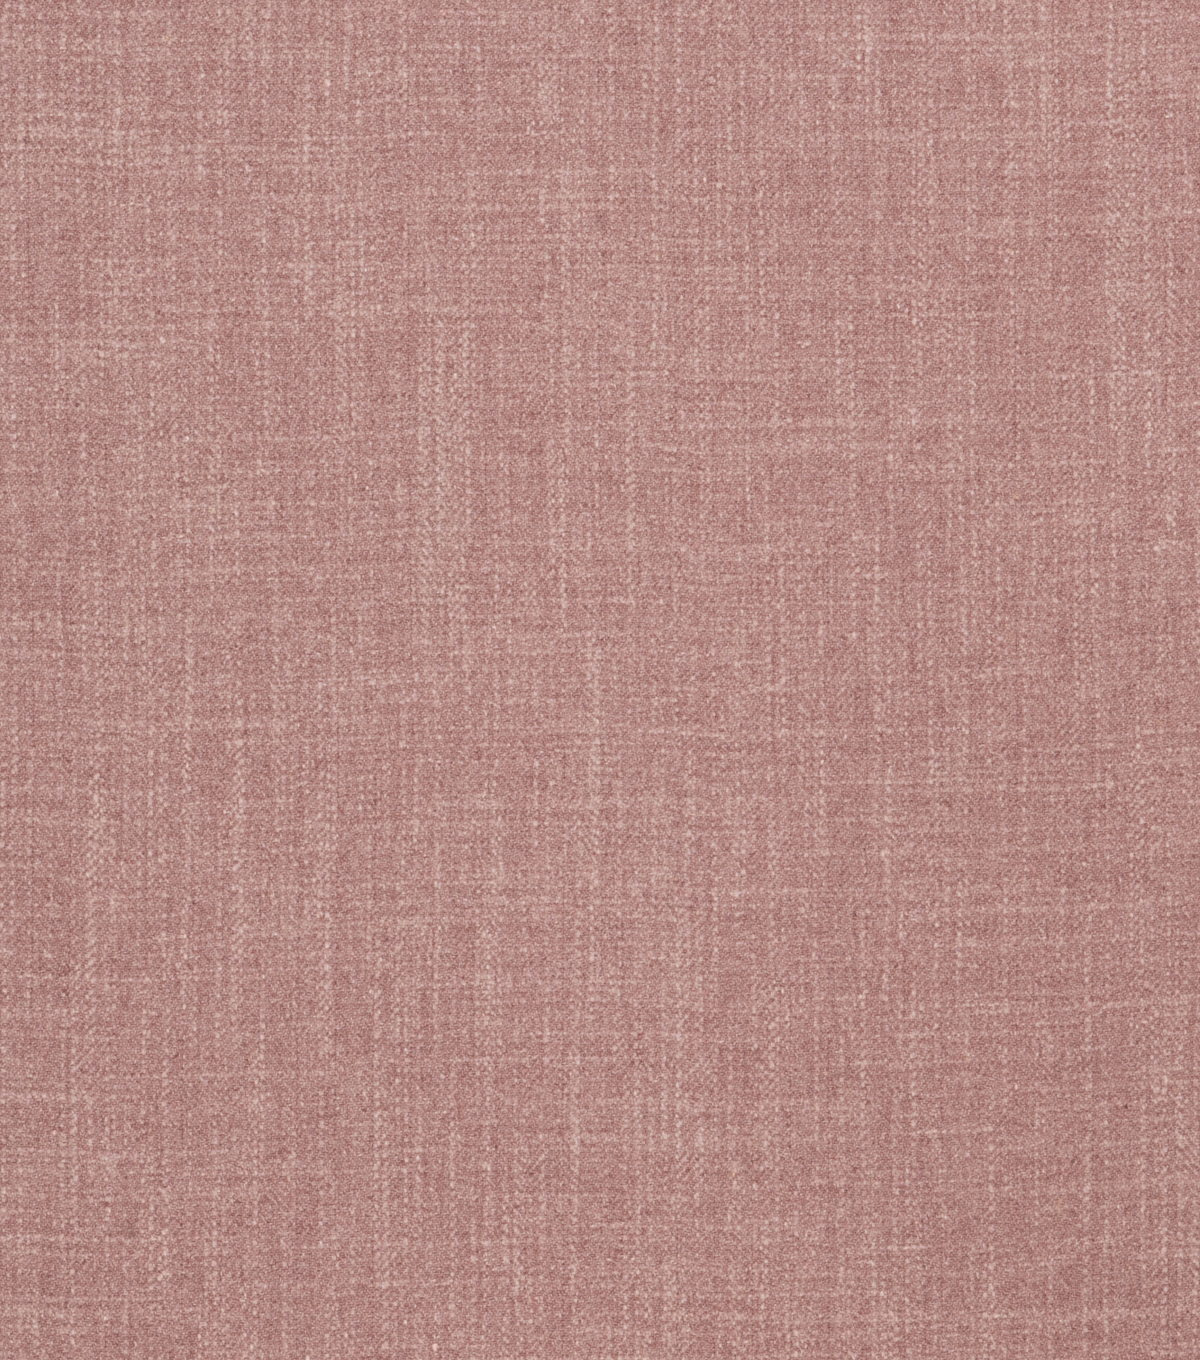 Mountain View Orchid Swatch